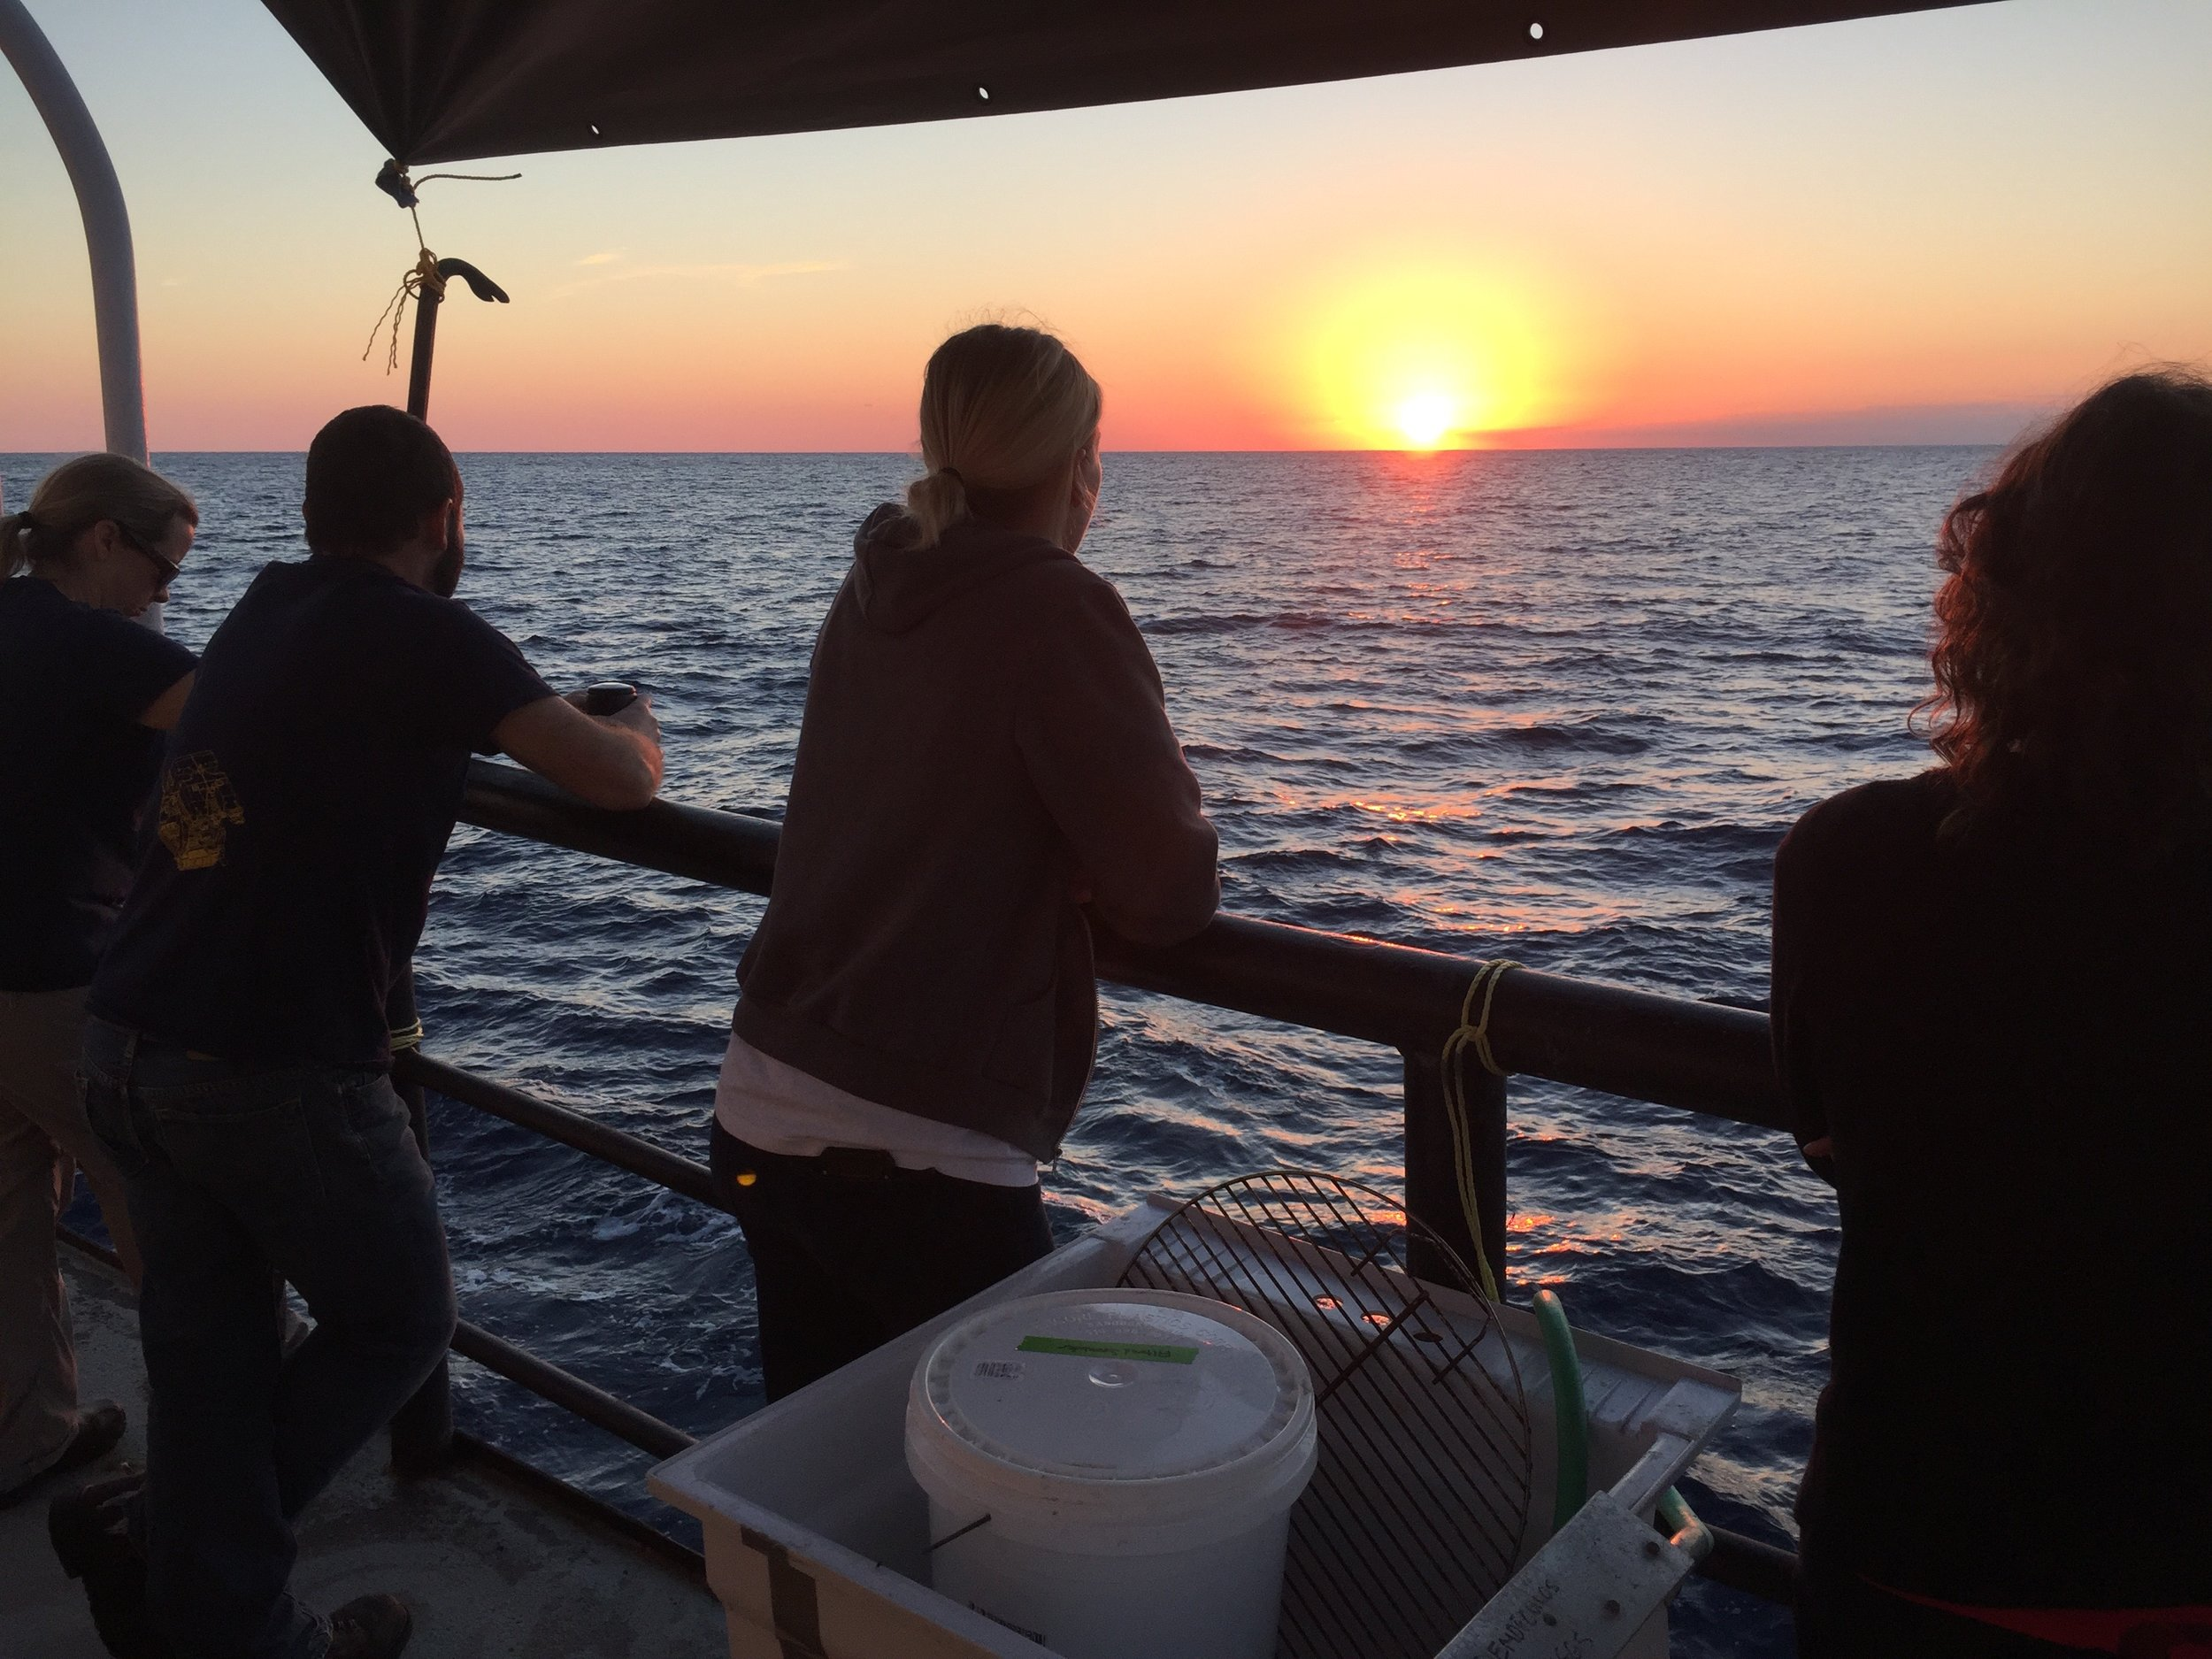 Fellow science team enjoying a beautiful sunset of the Gulf of Mexico